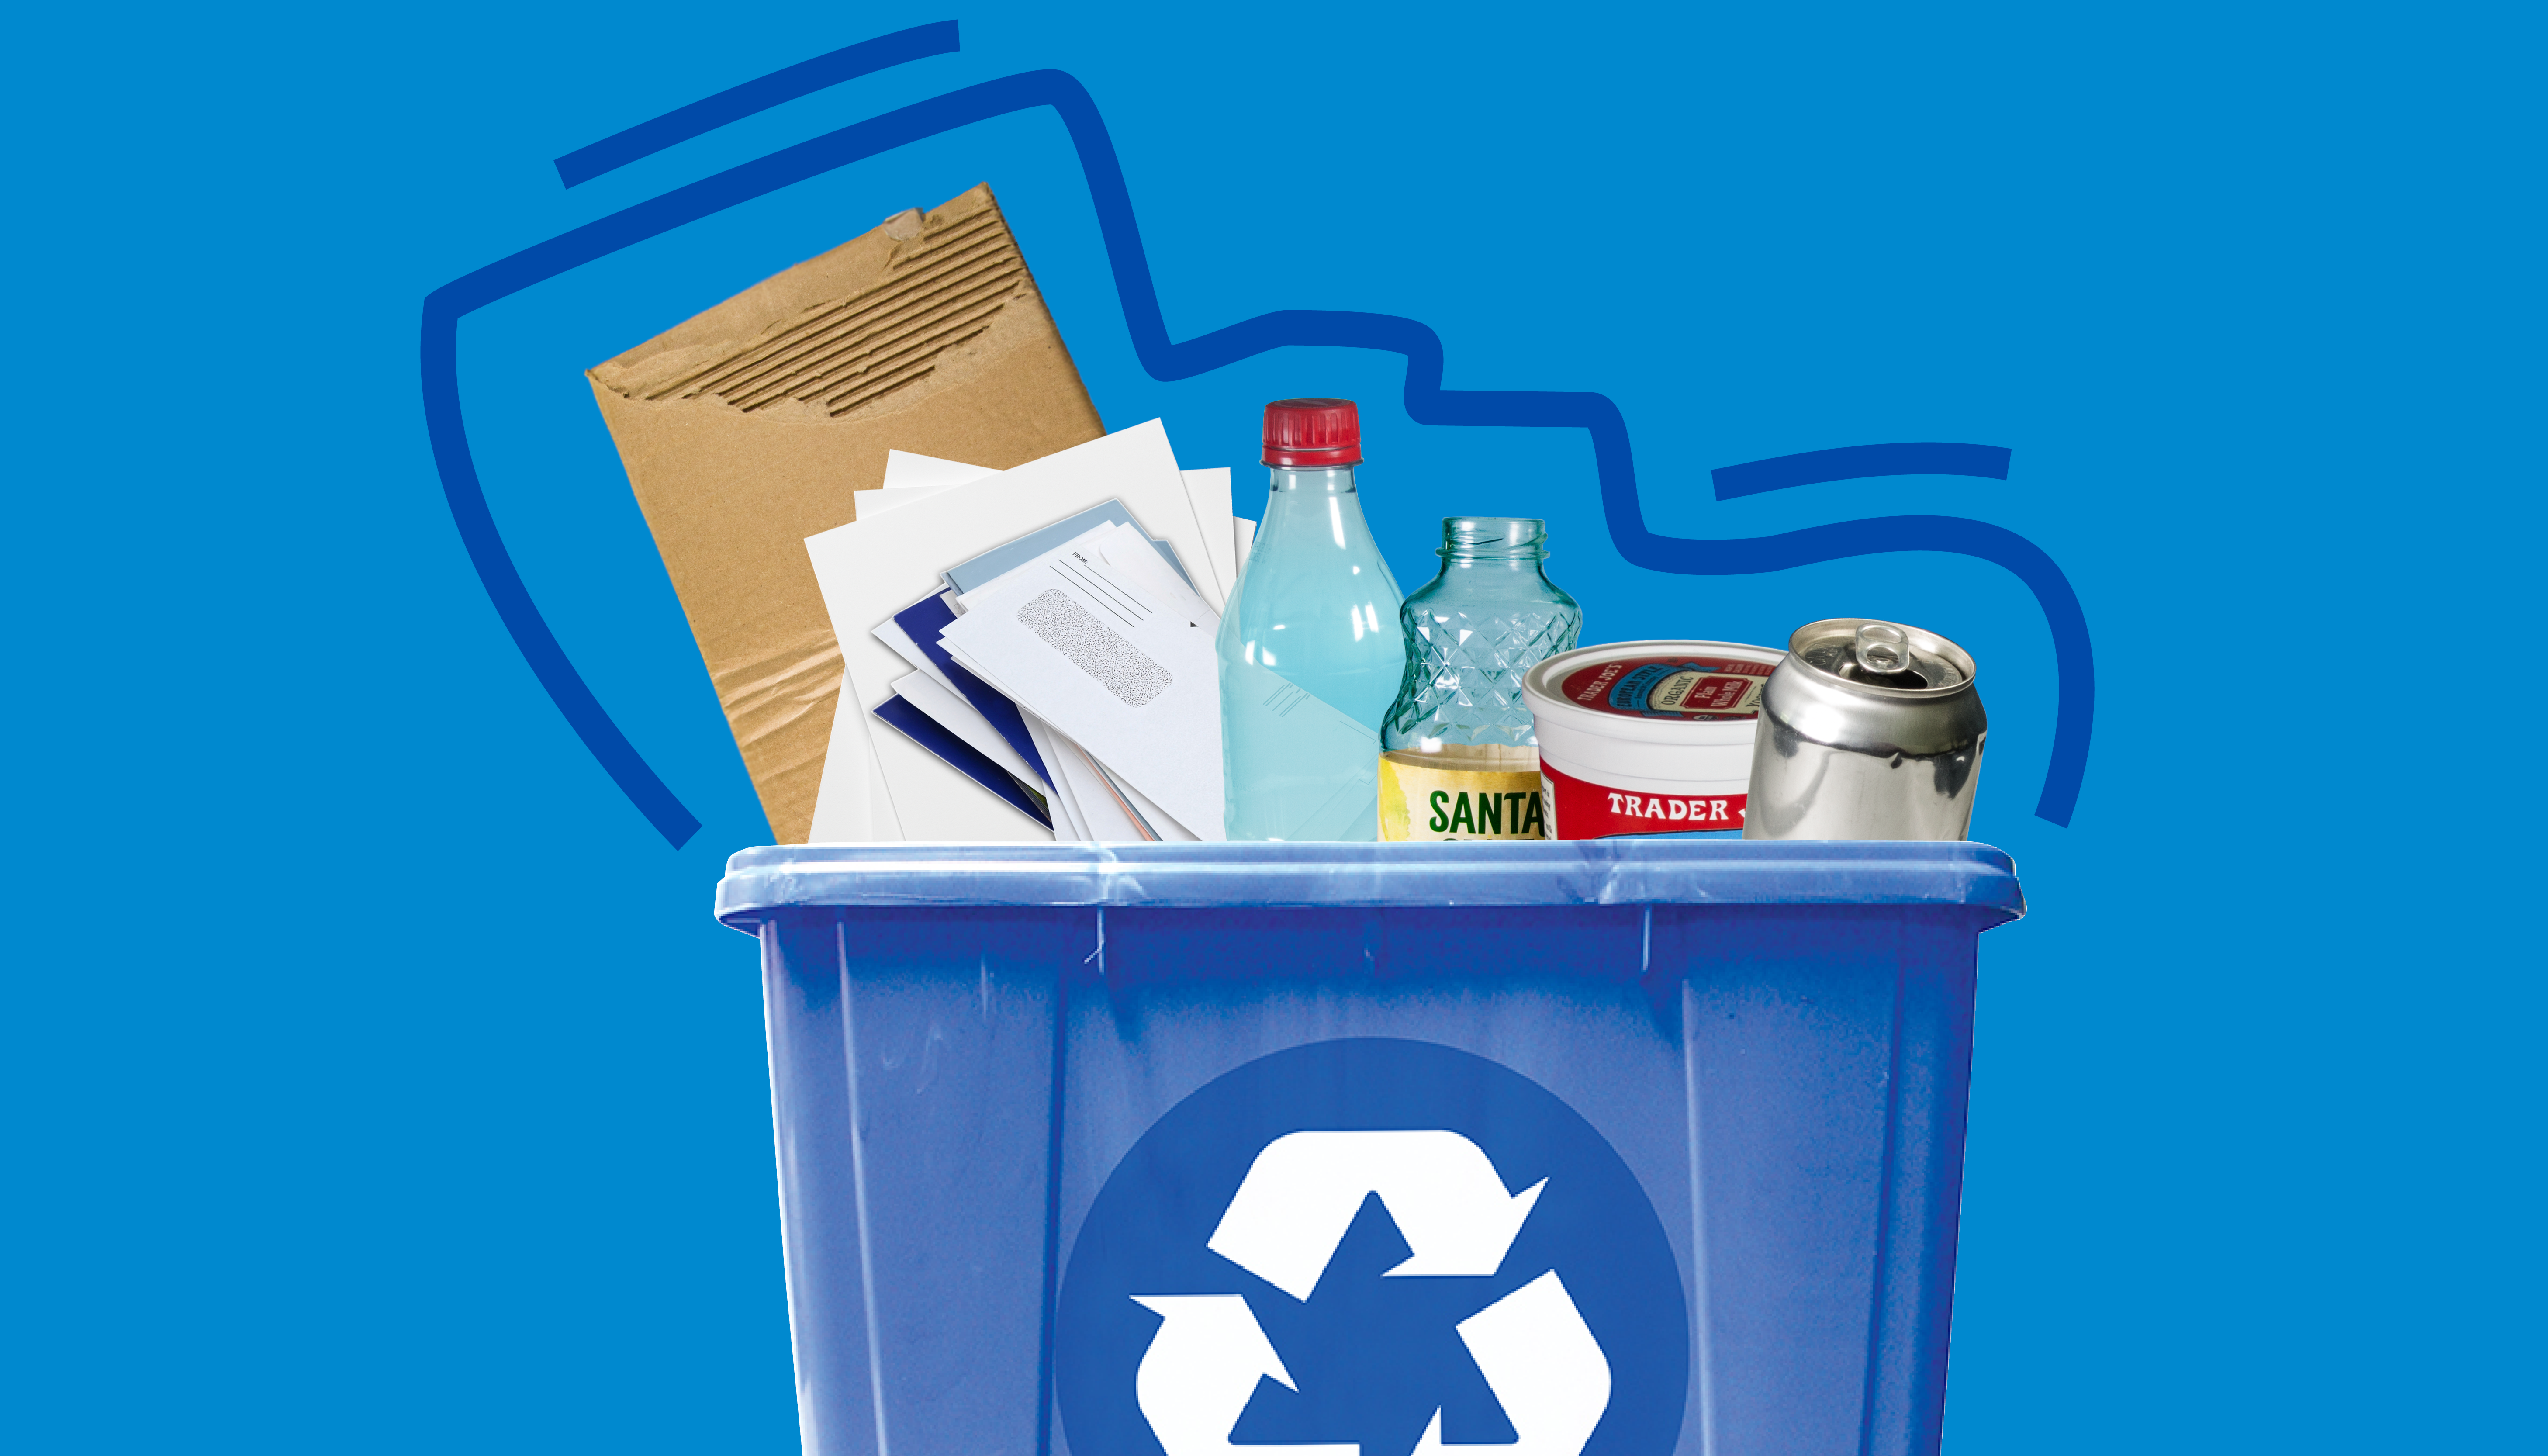 recyclables in a blue bin